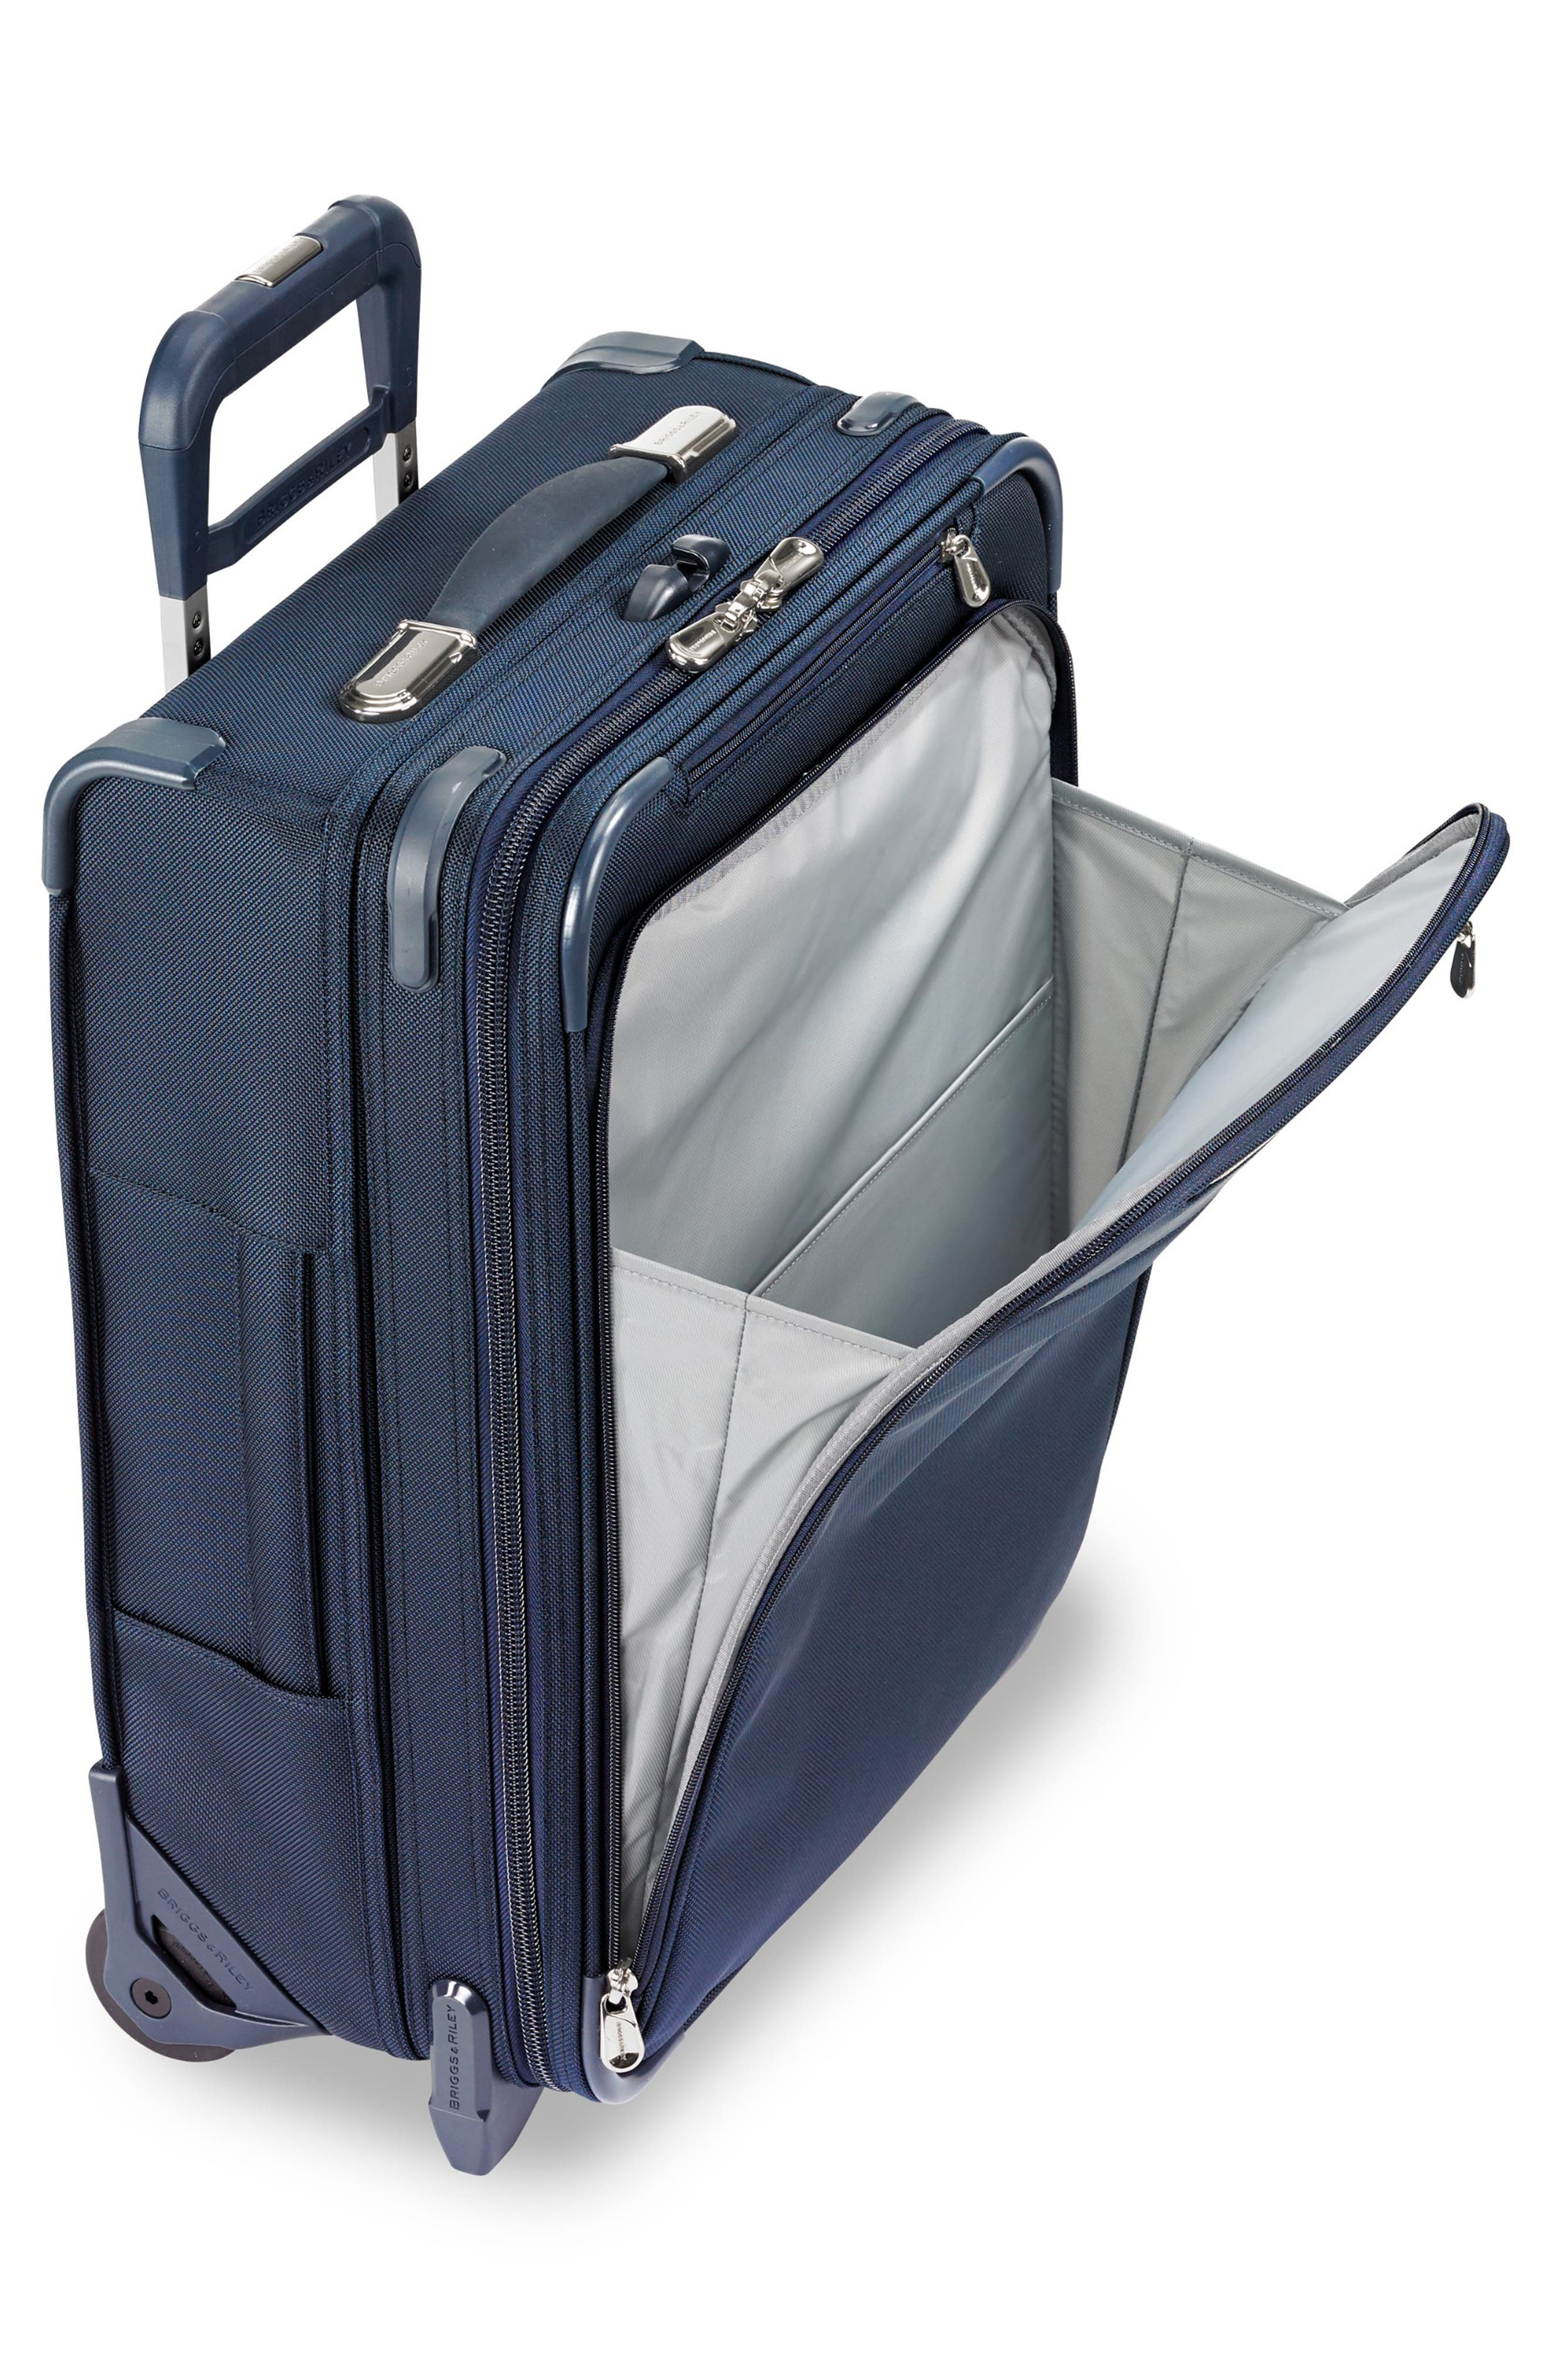 21-Inch Baseline Widebody International Rolling Carry-On,                             Alternate thumbnail 6, color,                             NAVY